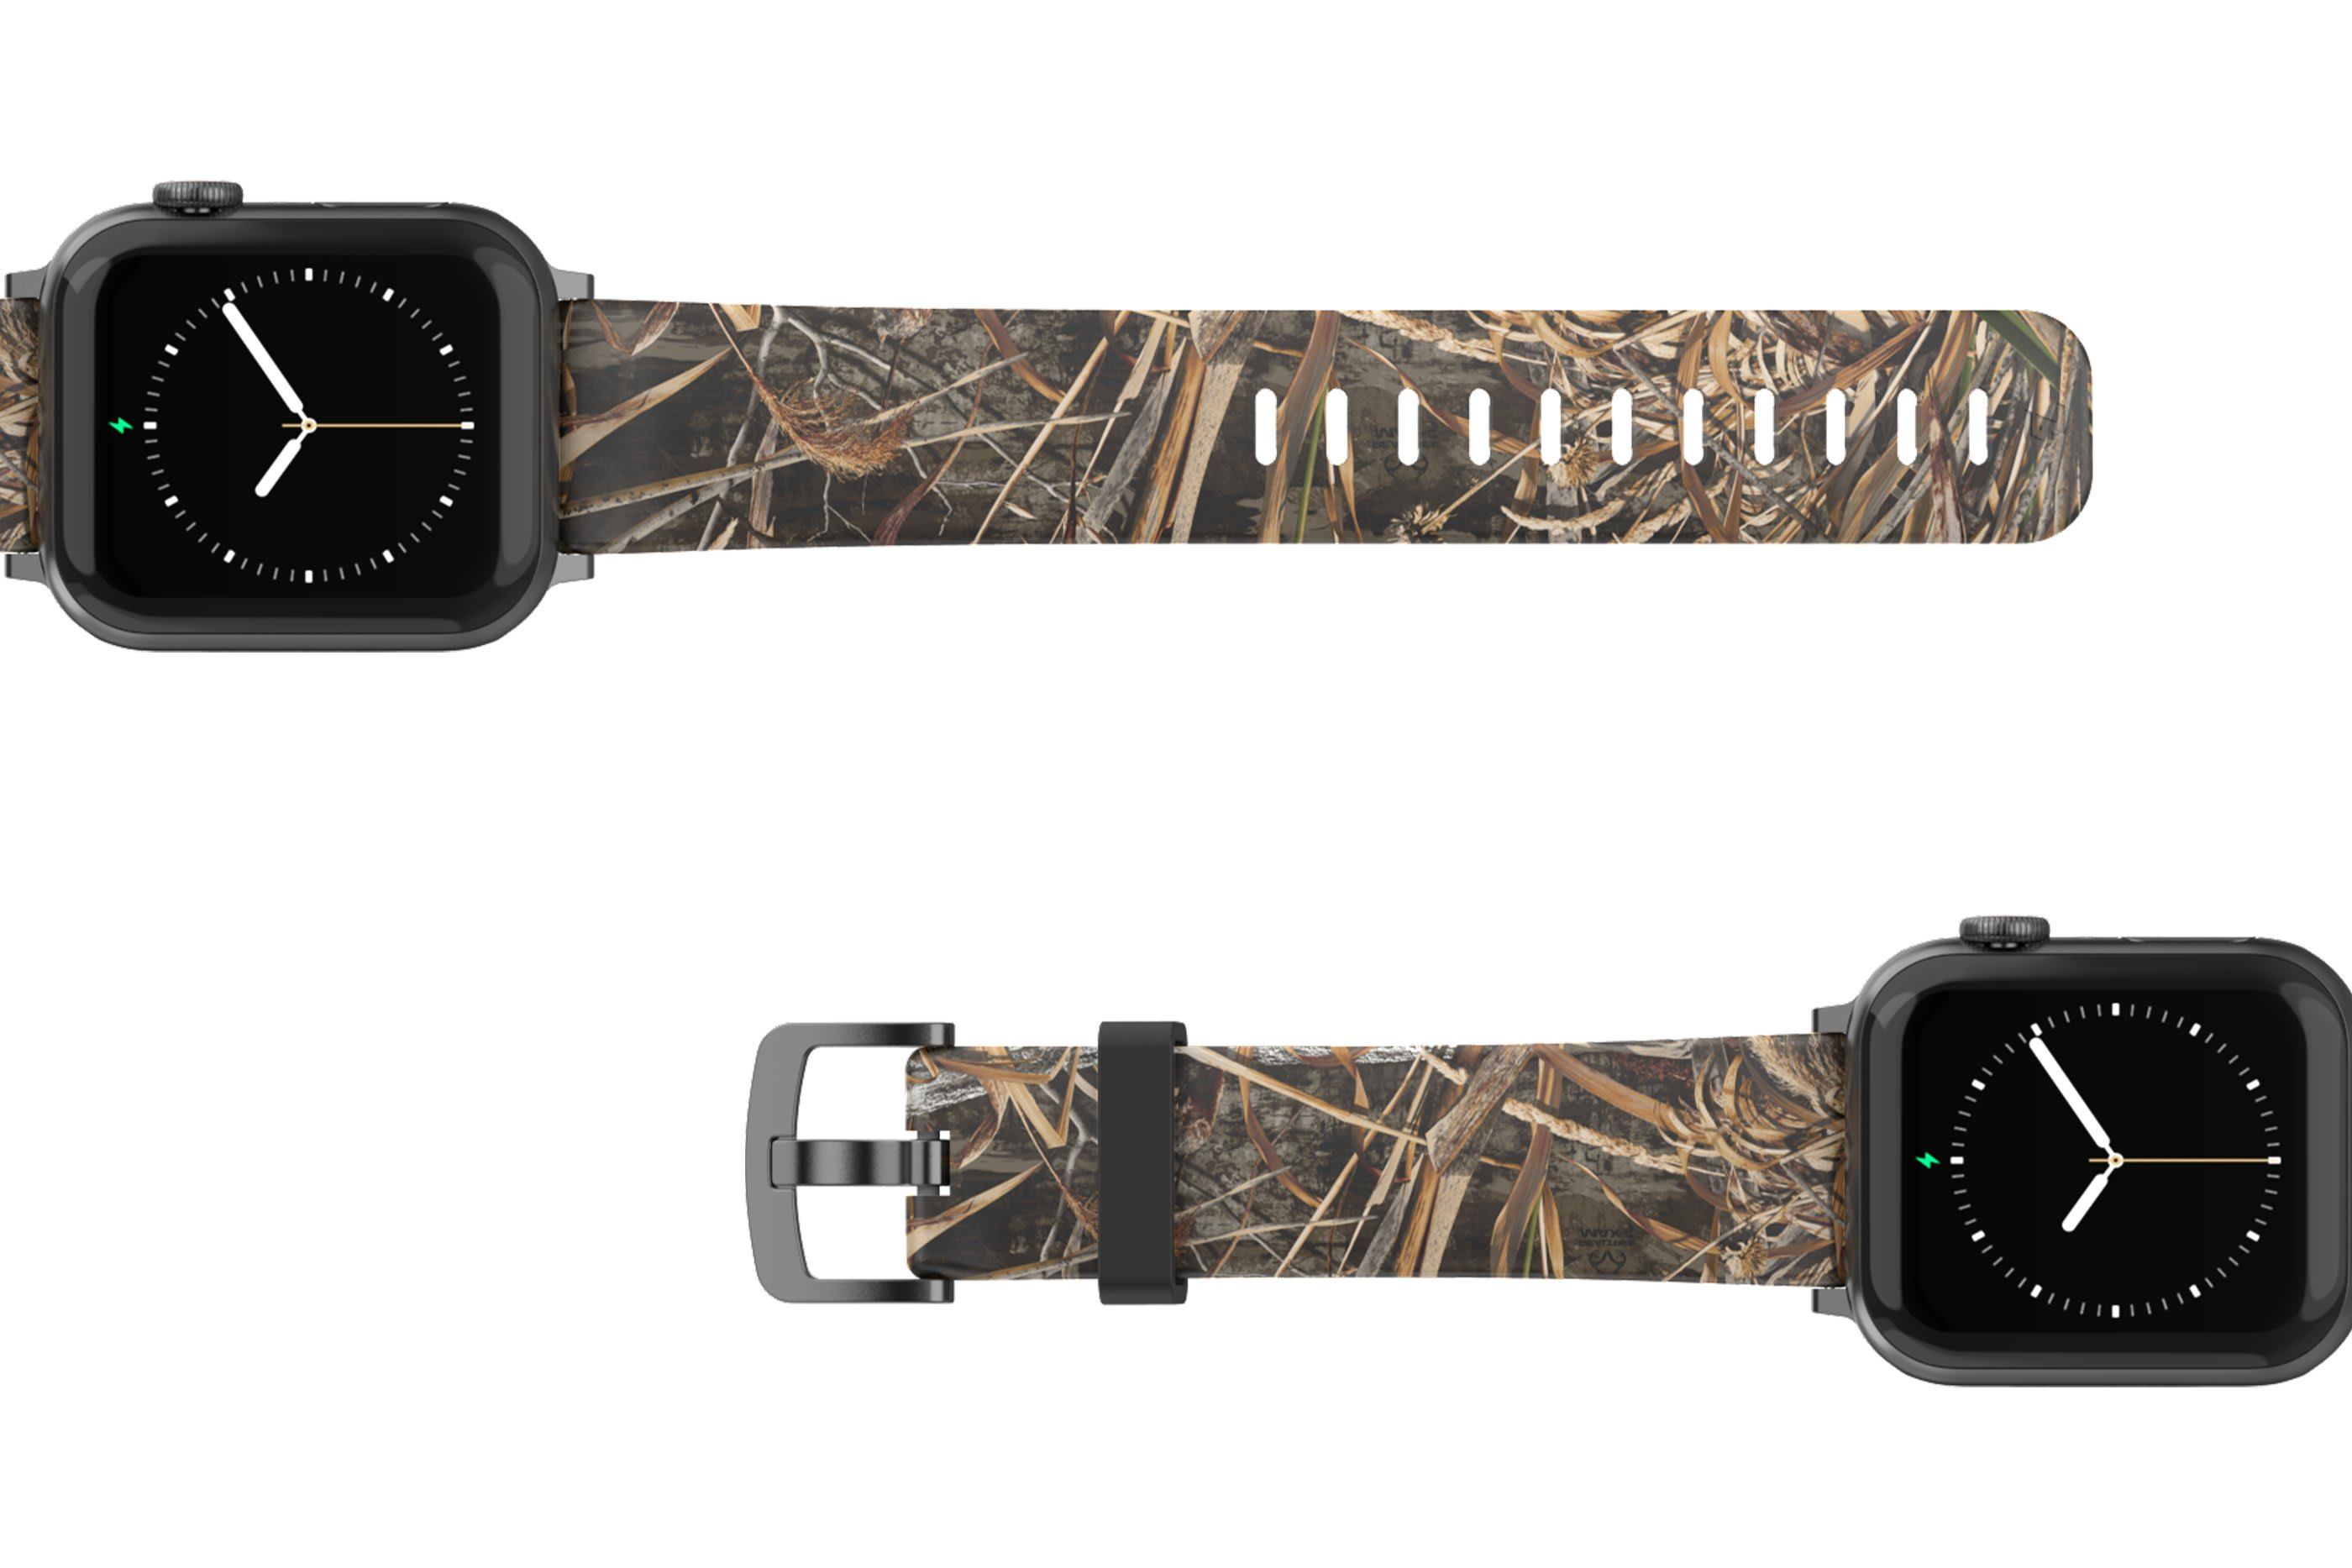 Realtree Max 5 Apple Watch Band with silver hardware viewed top down